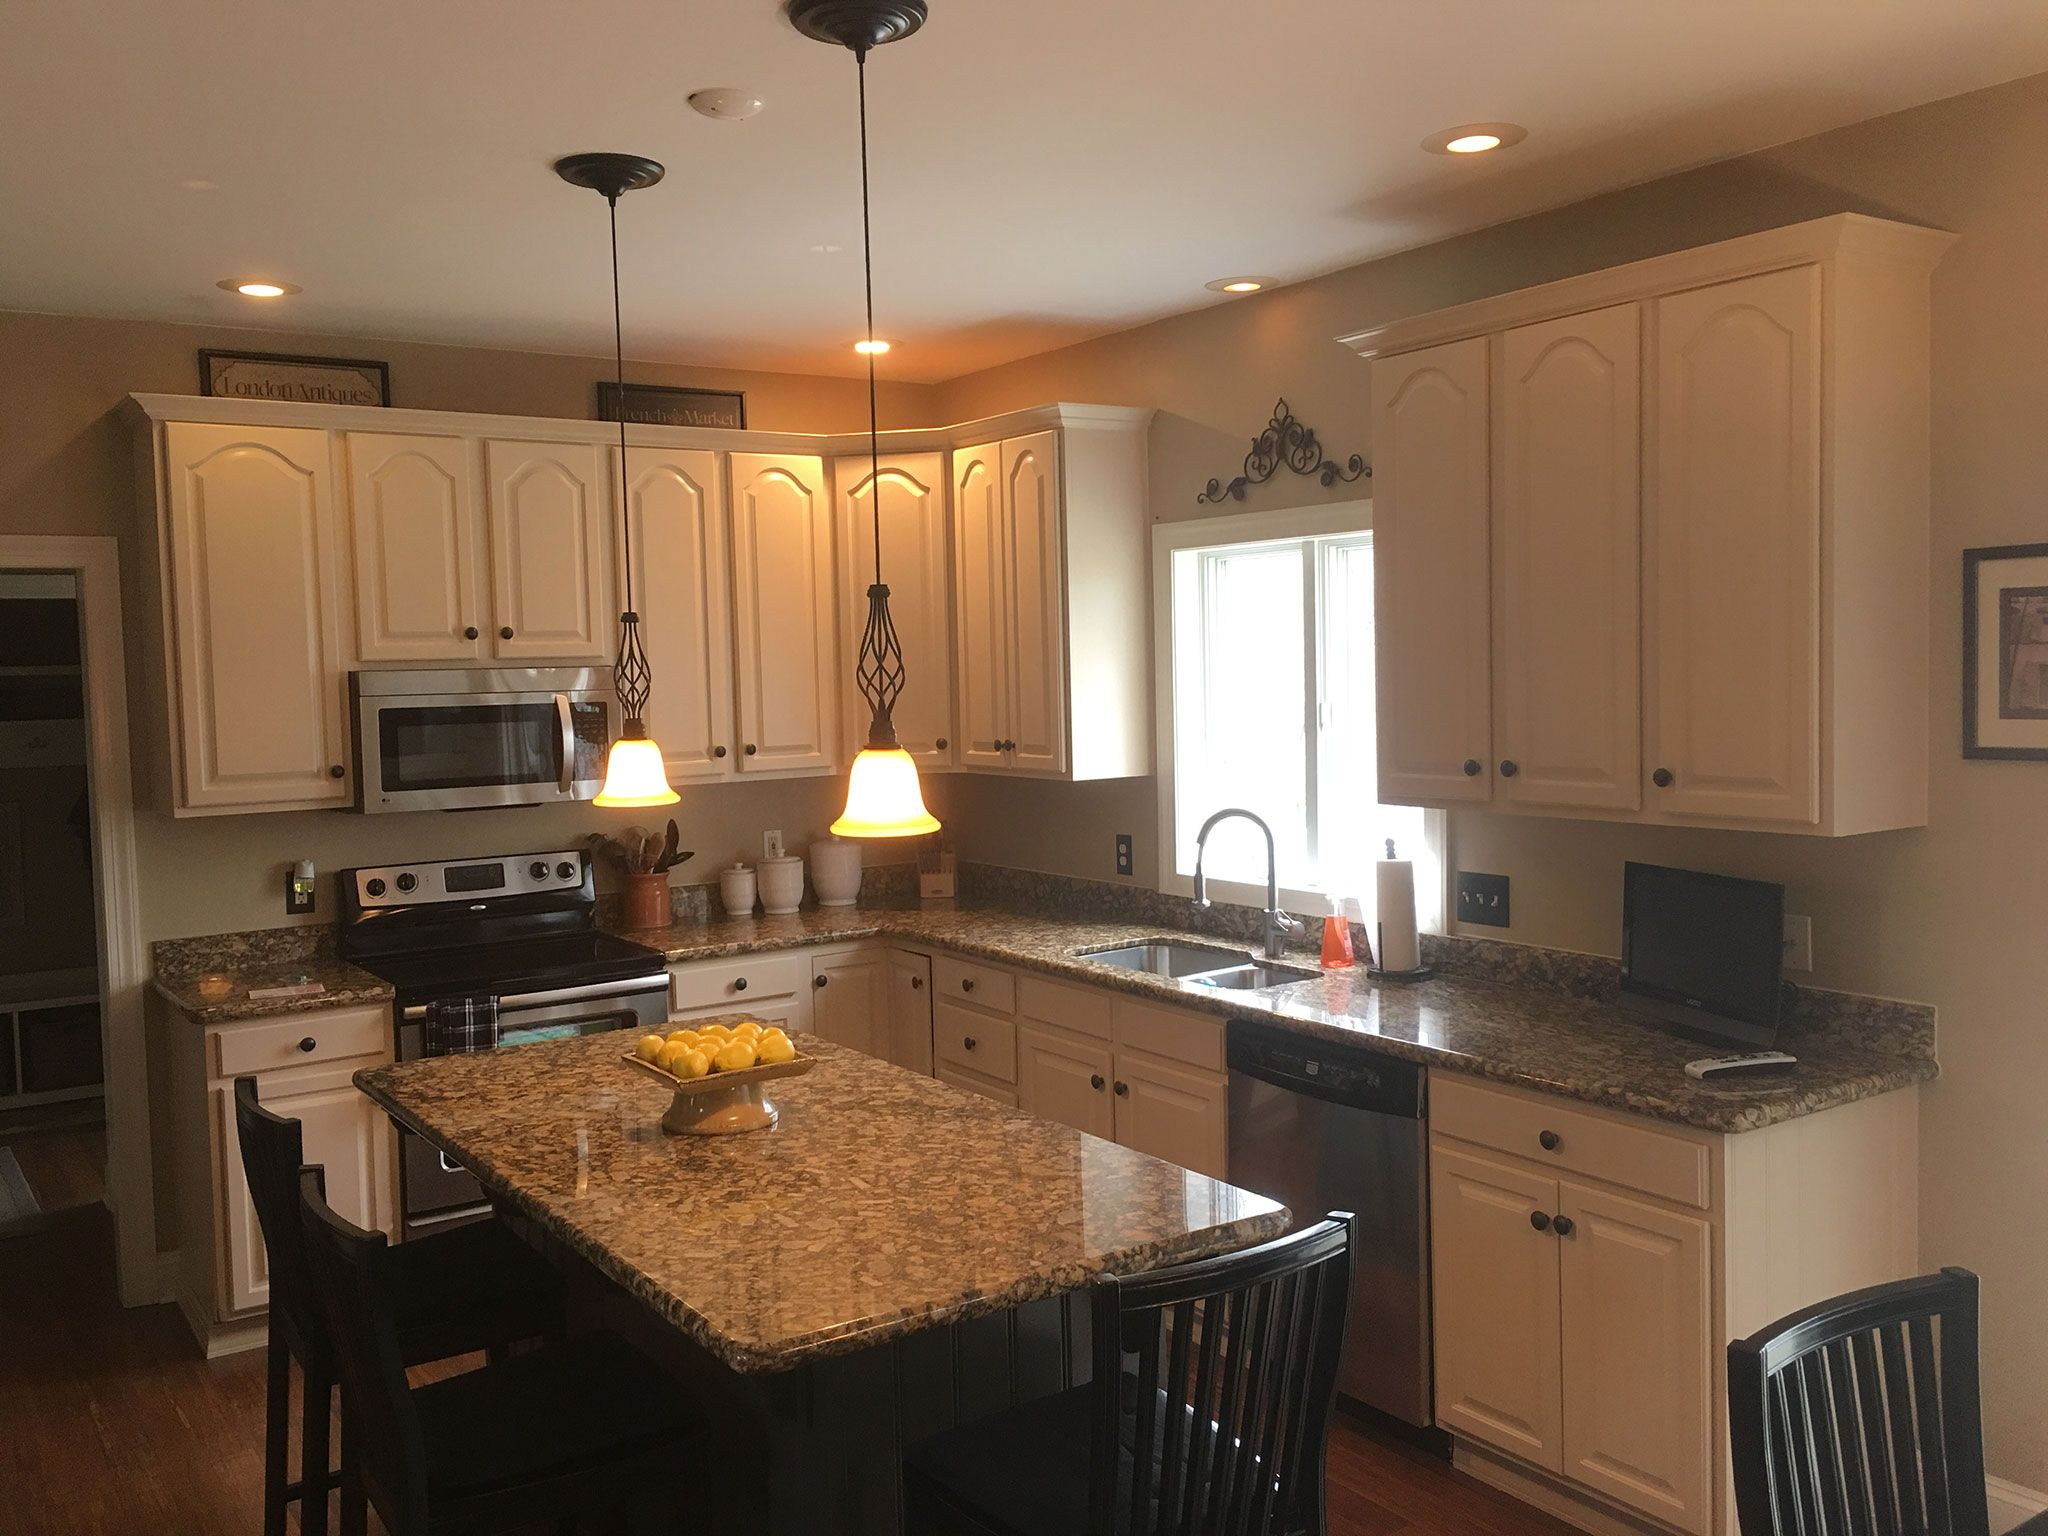 Buttercream Painted Cabinets With White Glaze Refinishing Cabinets Refinish Kitchen Cabinets Custom Kitchen Cabinets